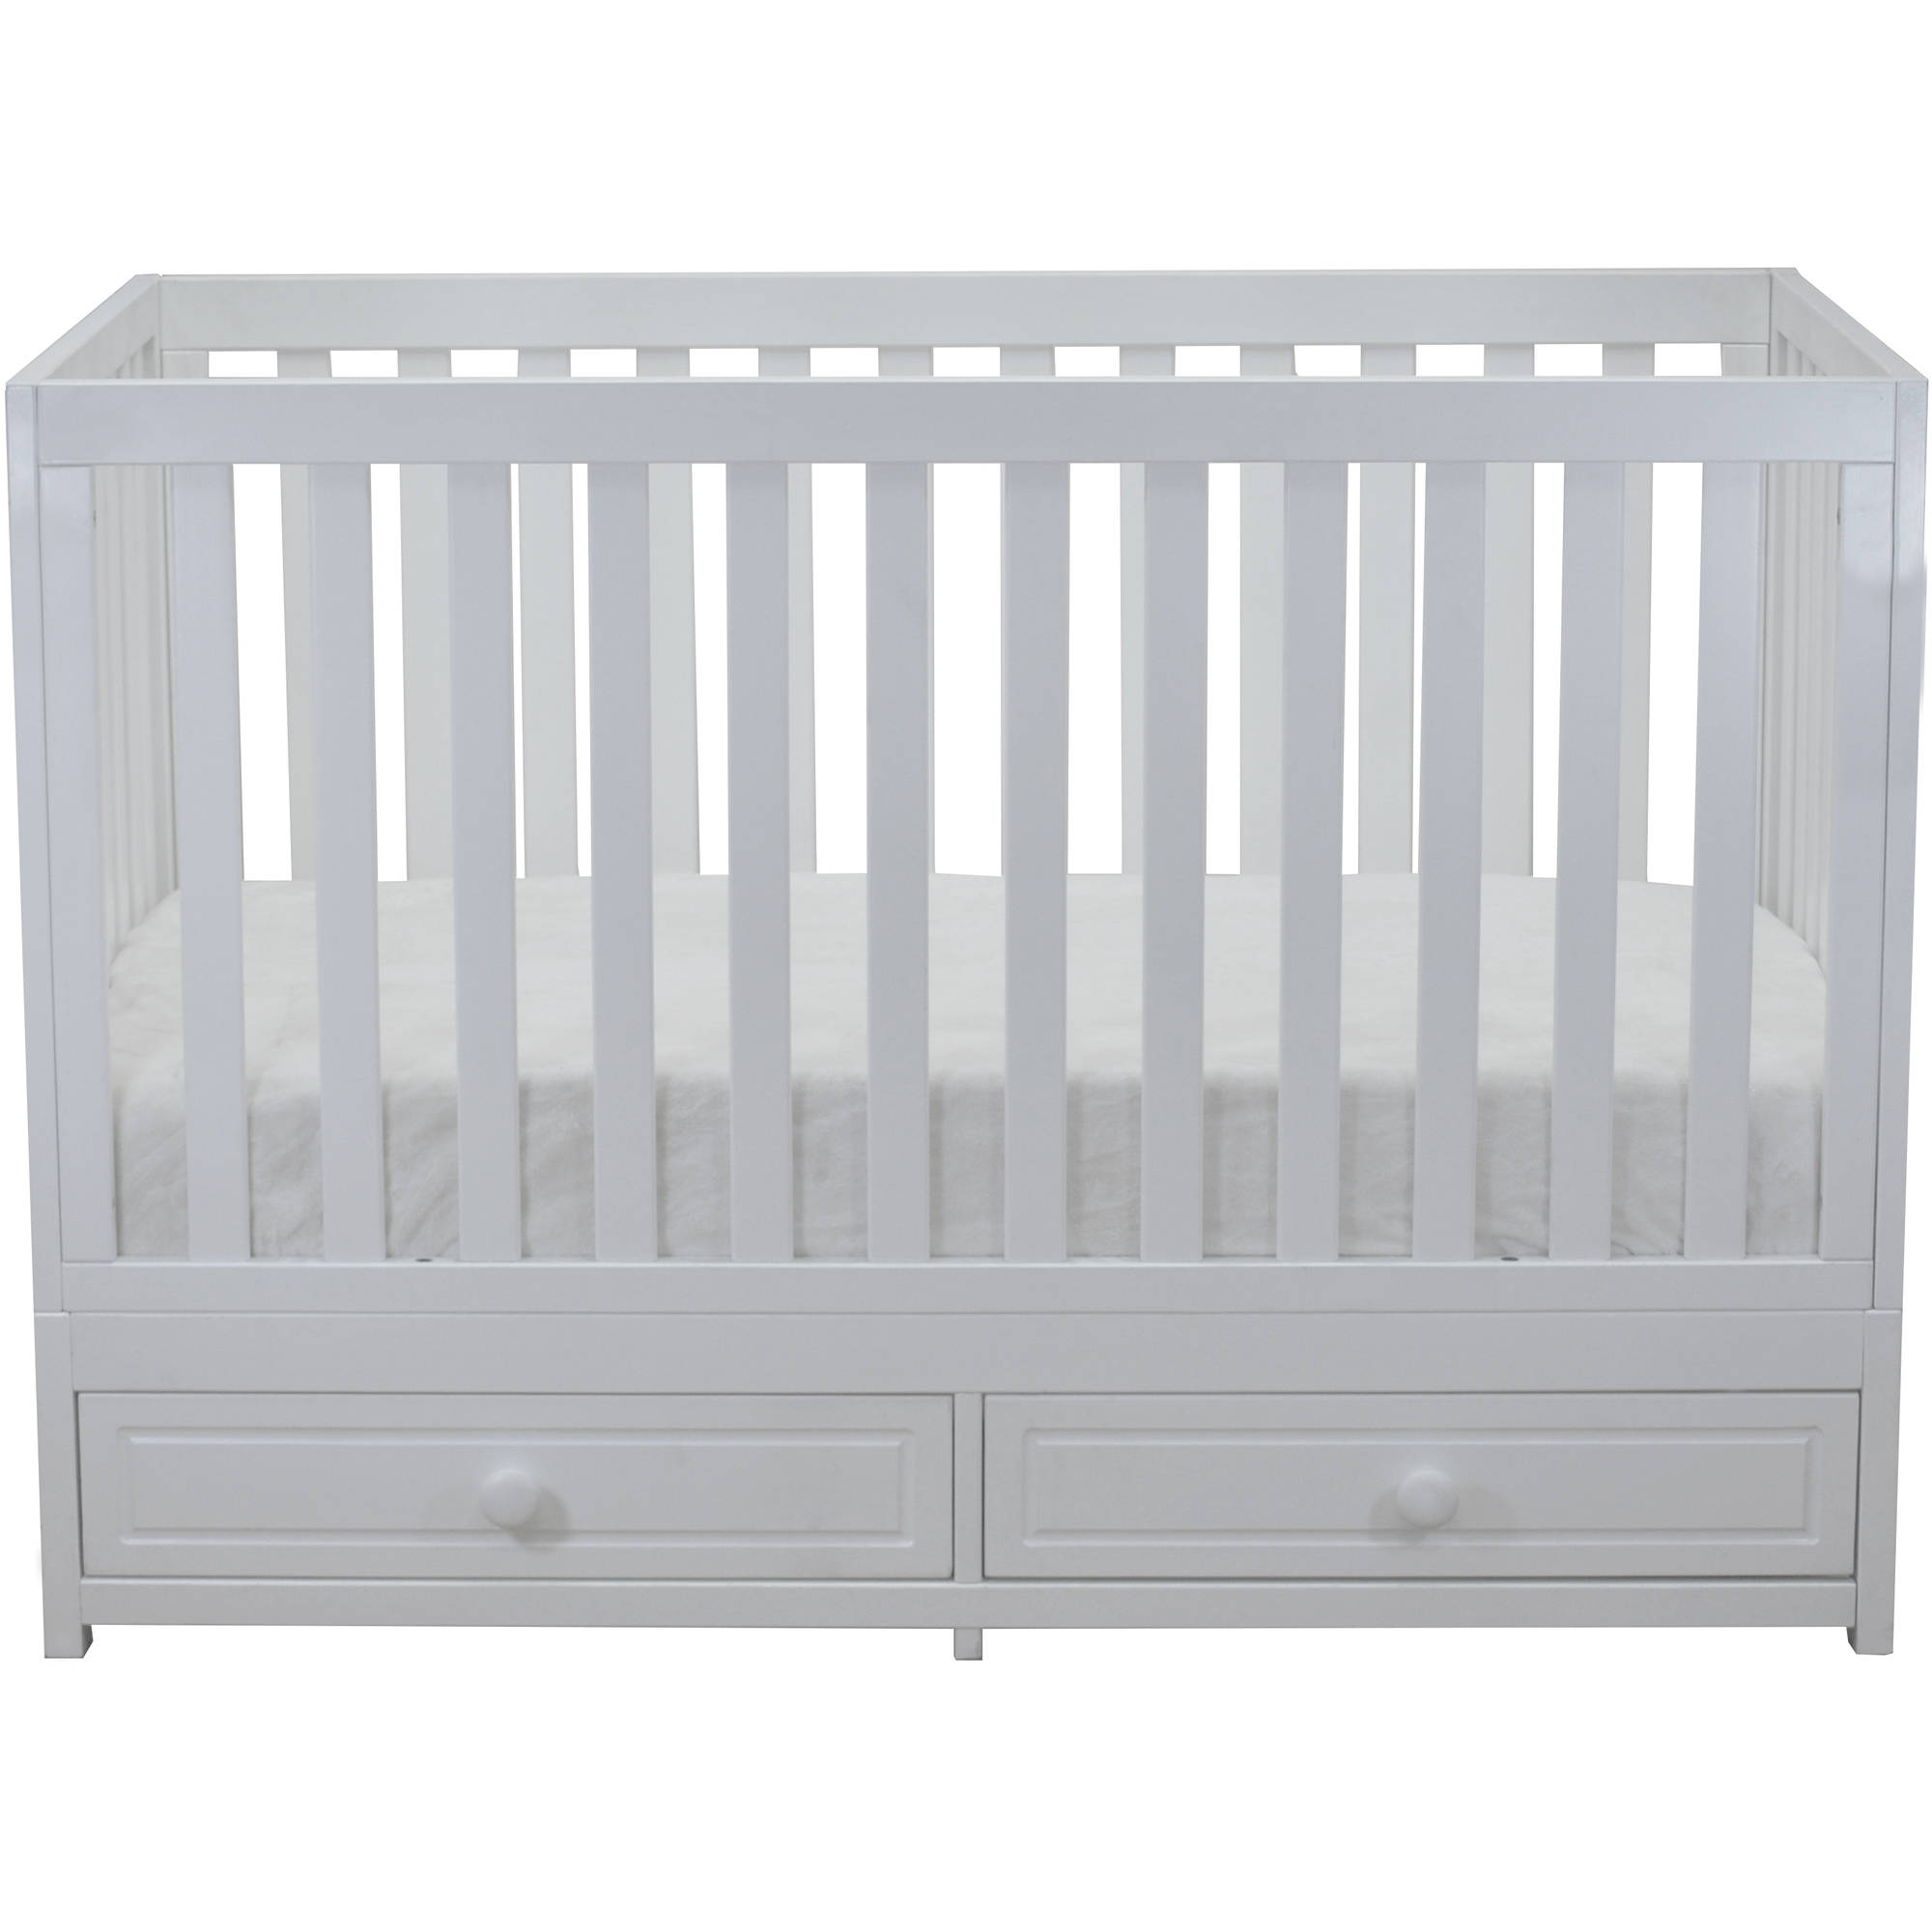 AFG Baby Furniture Marilyn 3-in-1 Convertible Crib with Storage White